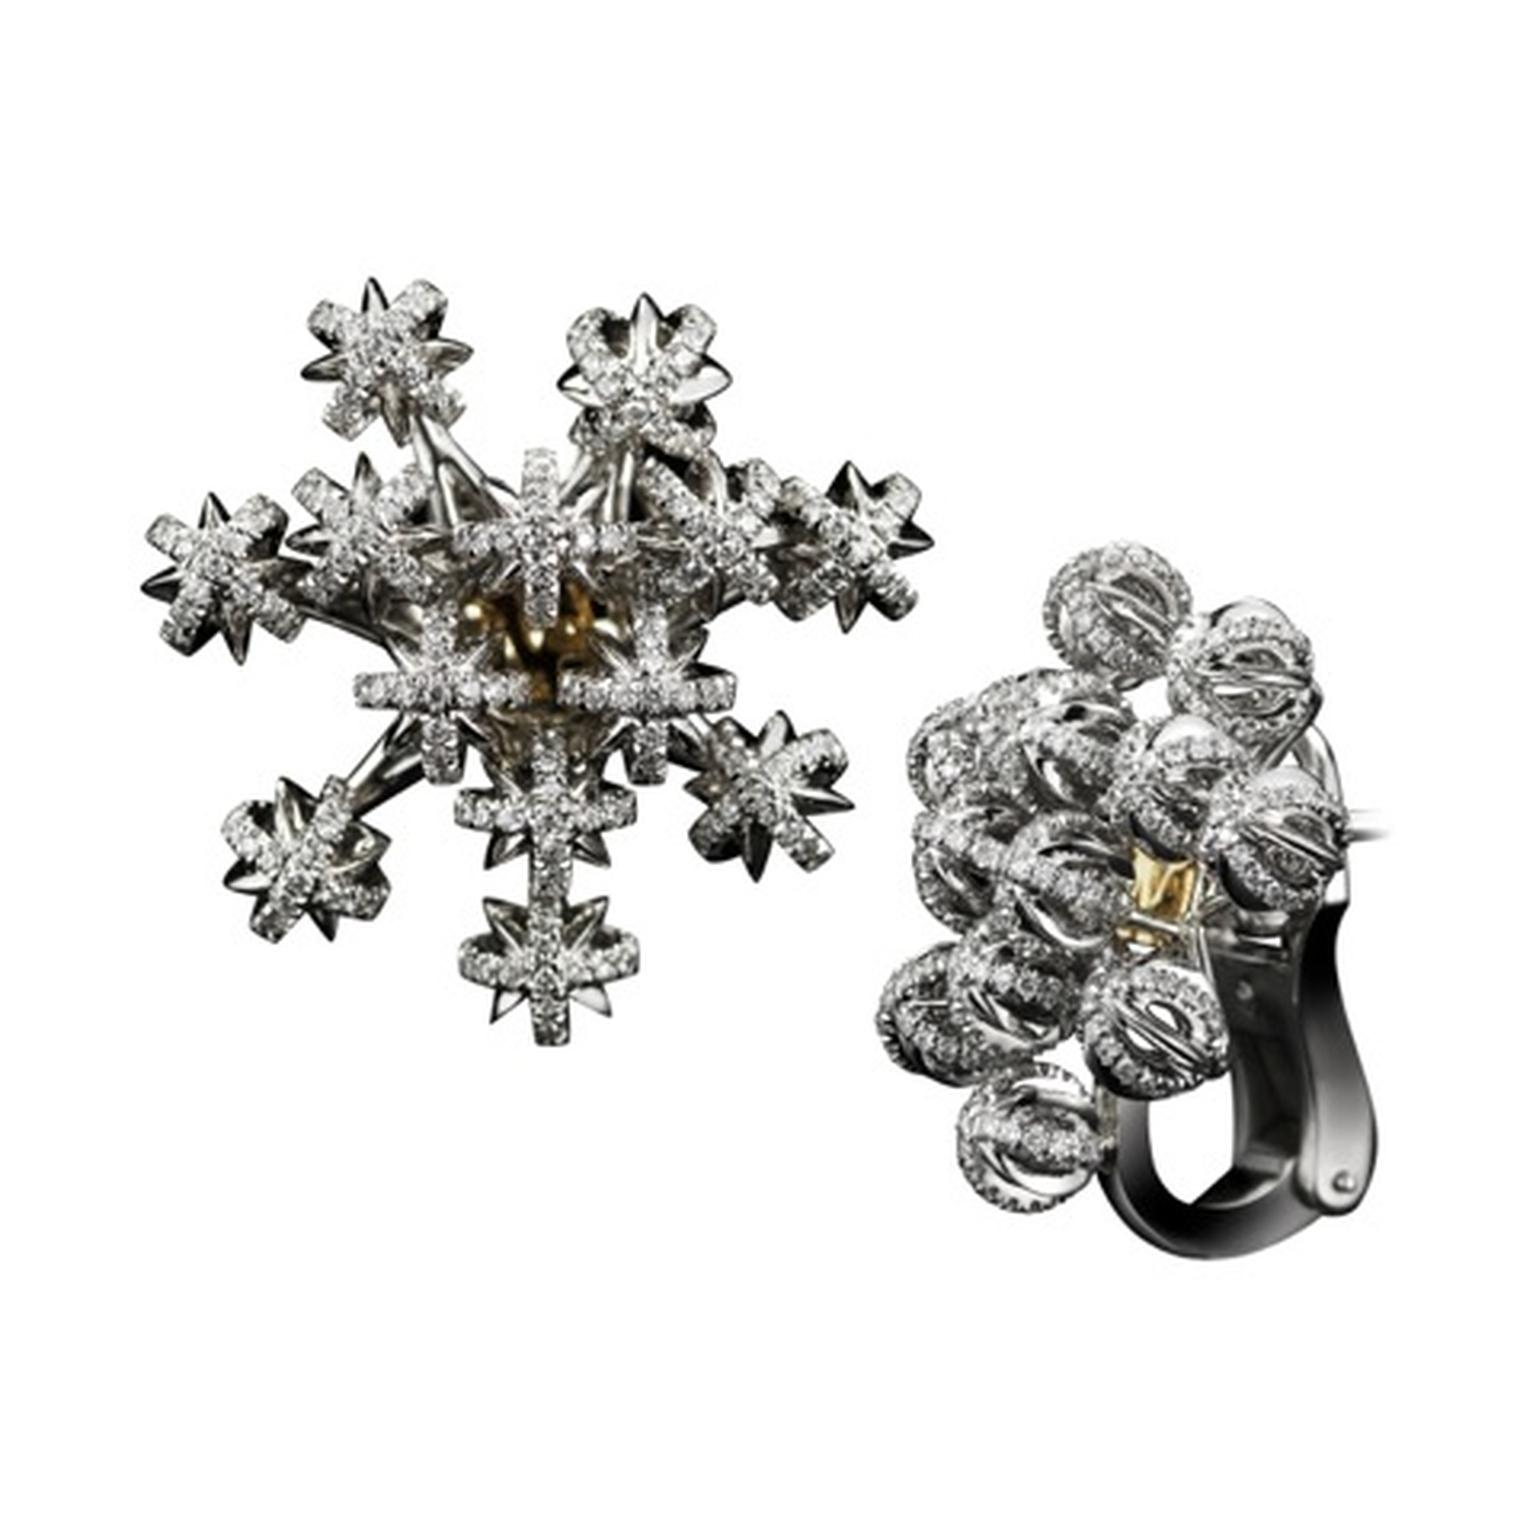 Alexandra Mor Dome Snowflake charm earrings featuring diamonds set in white and black gold.